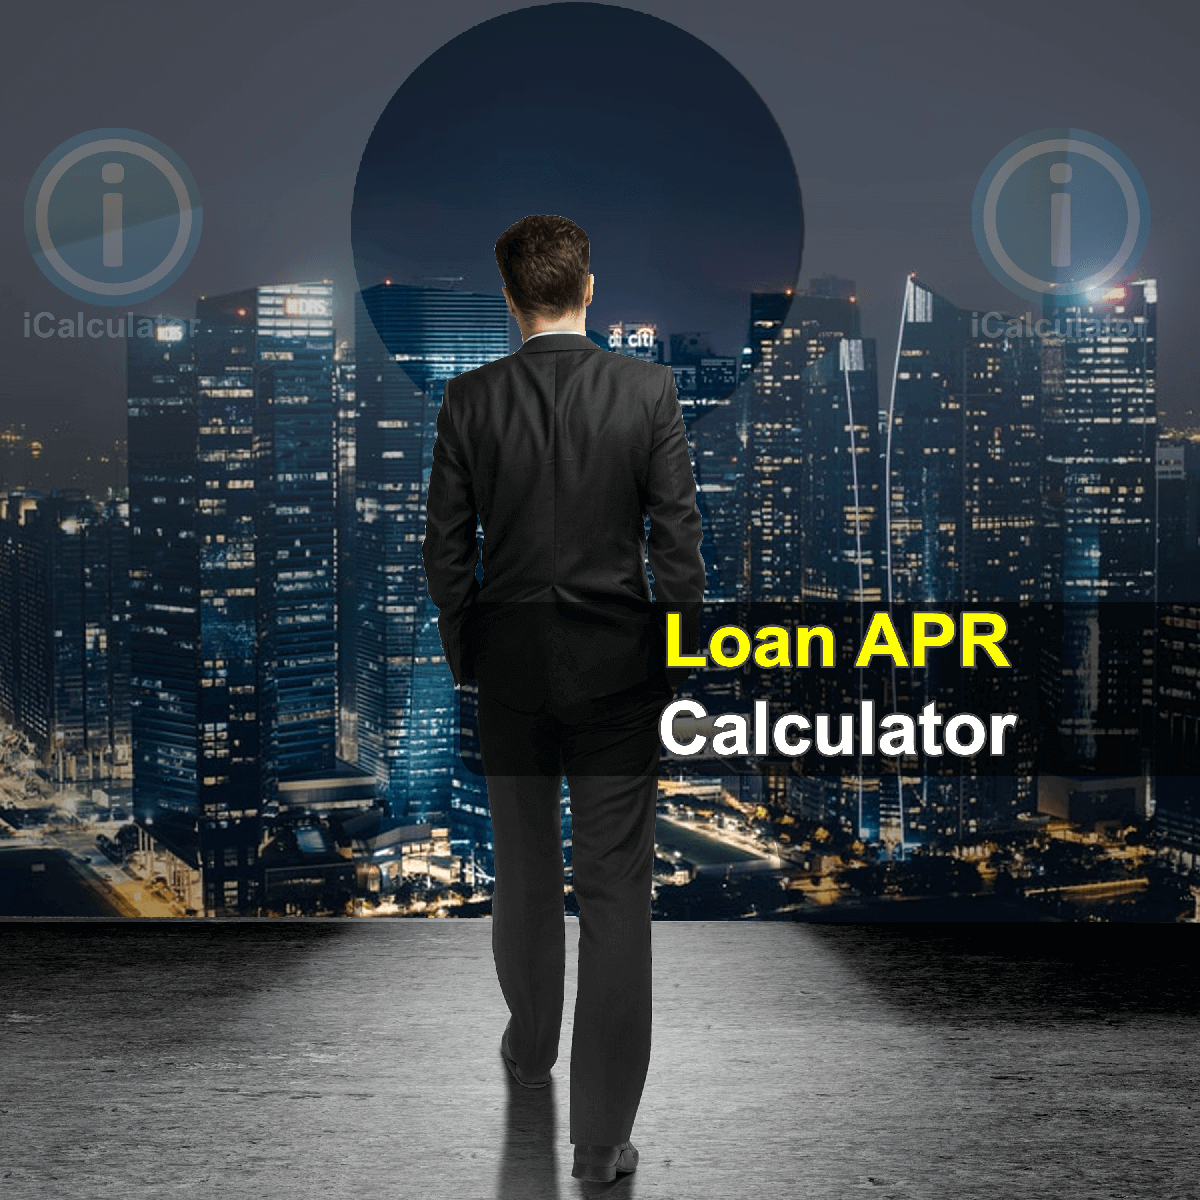 APR Simple Interest Loan Calculator. This image provides details of how to calculate APR Interest on a Loan using a calculator and notepad. By using the APR Simple Interest Loan formula, the APR Simple Interest Loan Calculator provides a true calculation of the interest paid on a loan.